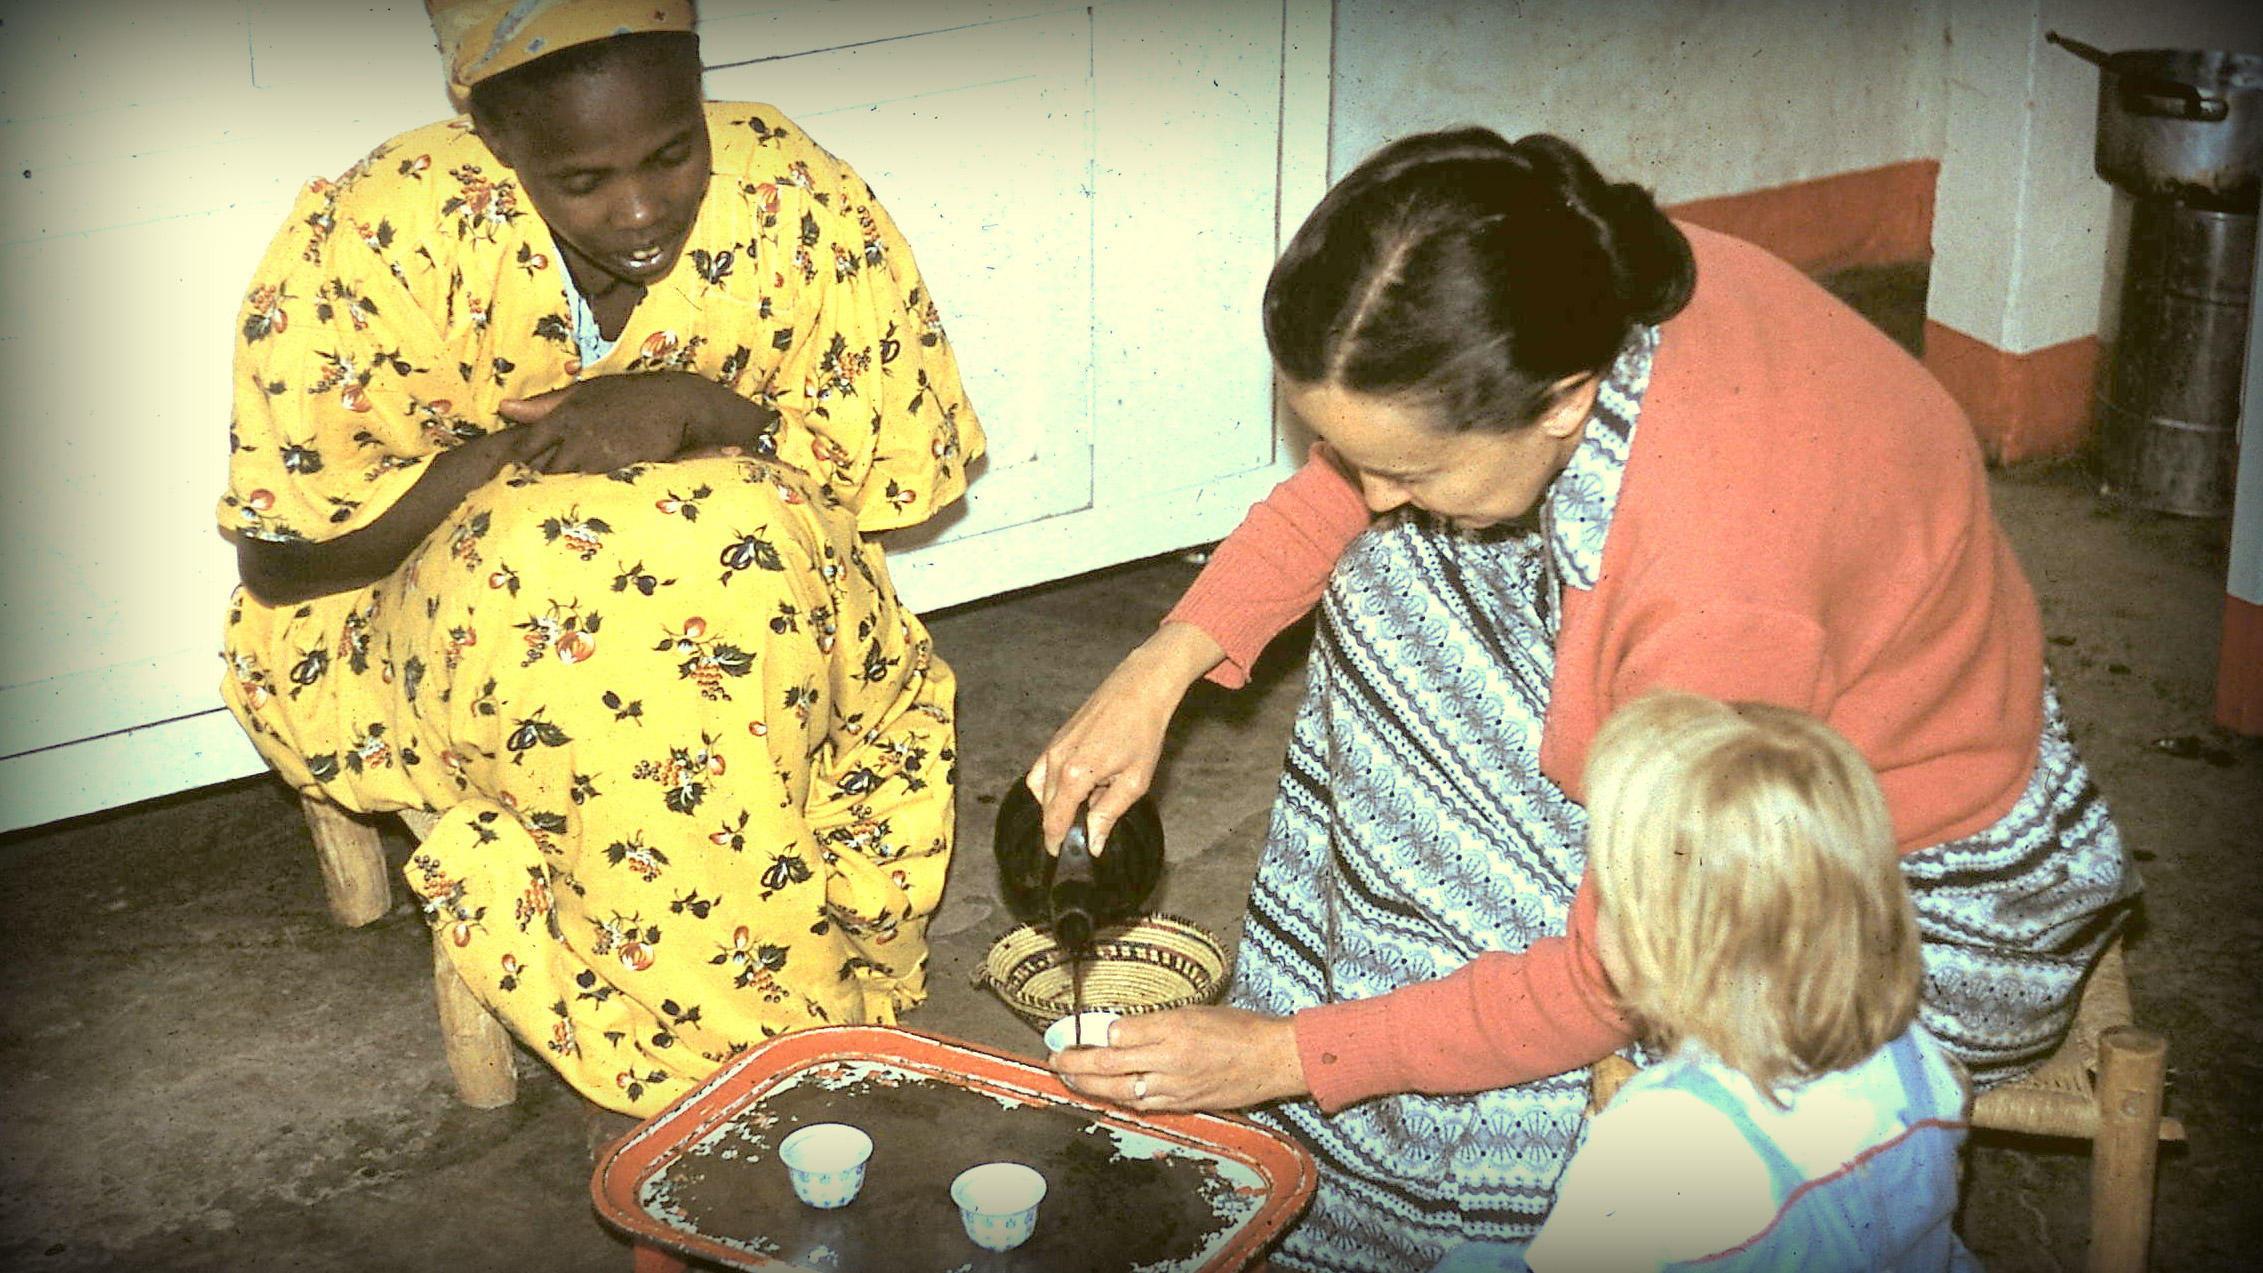 Arlena Mahaffy and her youngest child, Elizabeth, making coffee with Tuka'a, in Eritrea. (Courtesy of Peter Mahaffy.)